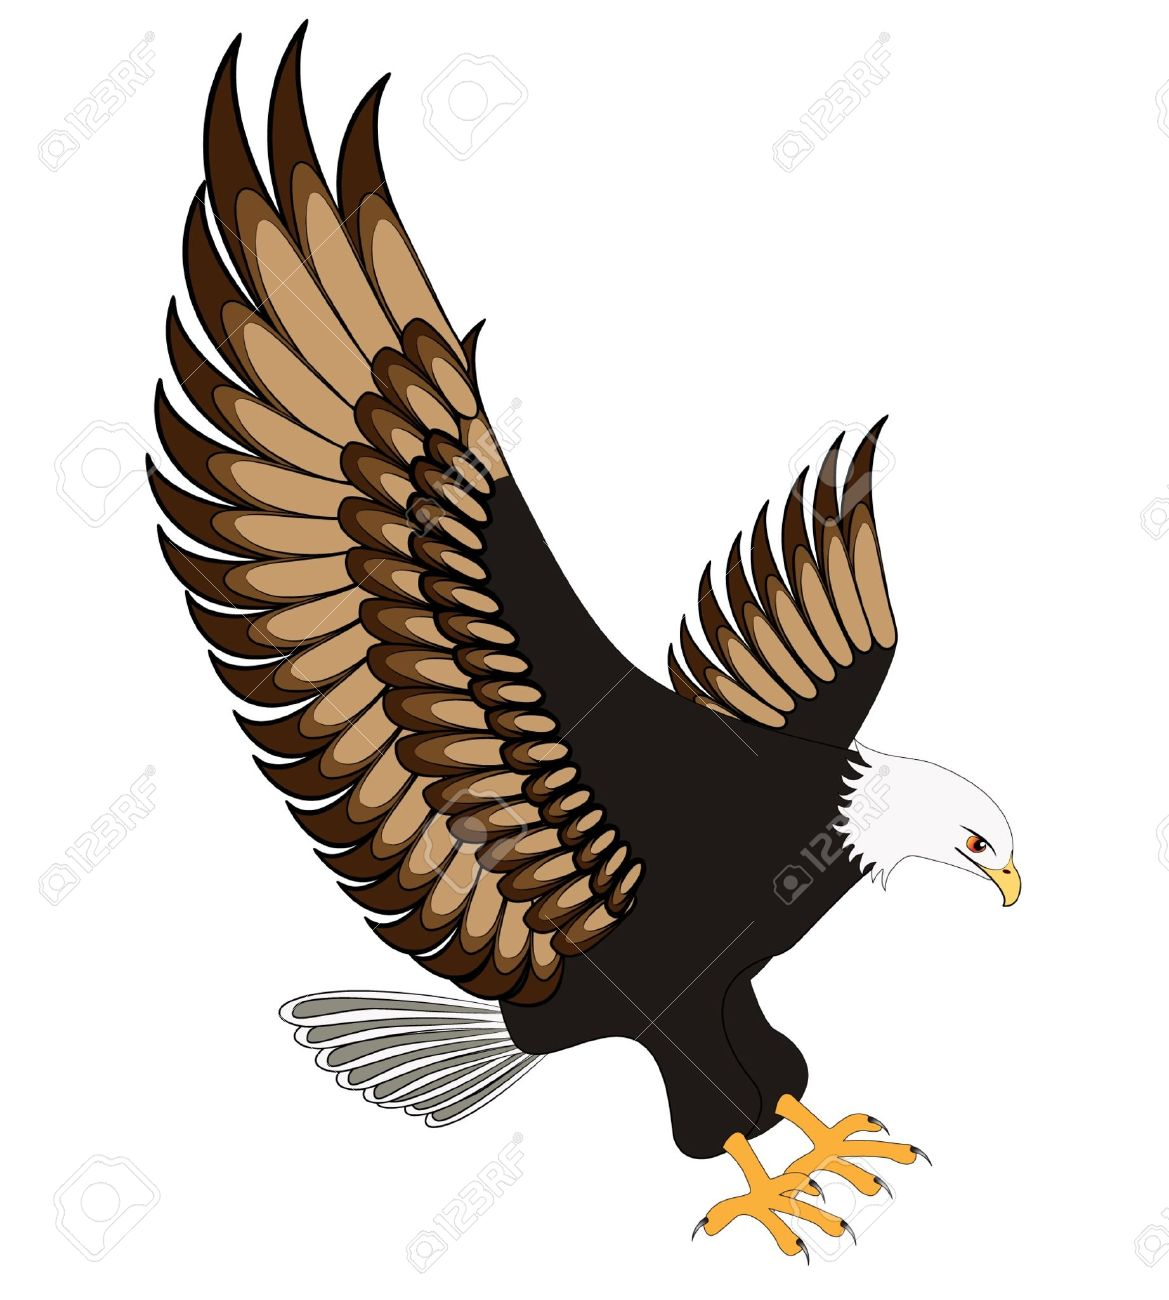 Illustration flying eagle insulated on white background stock vector 10181403